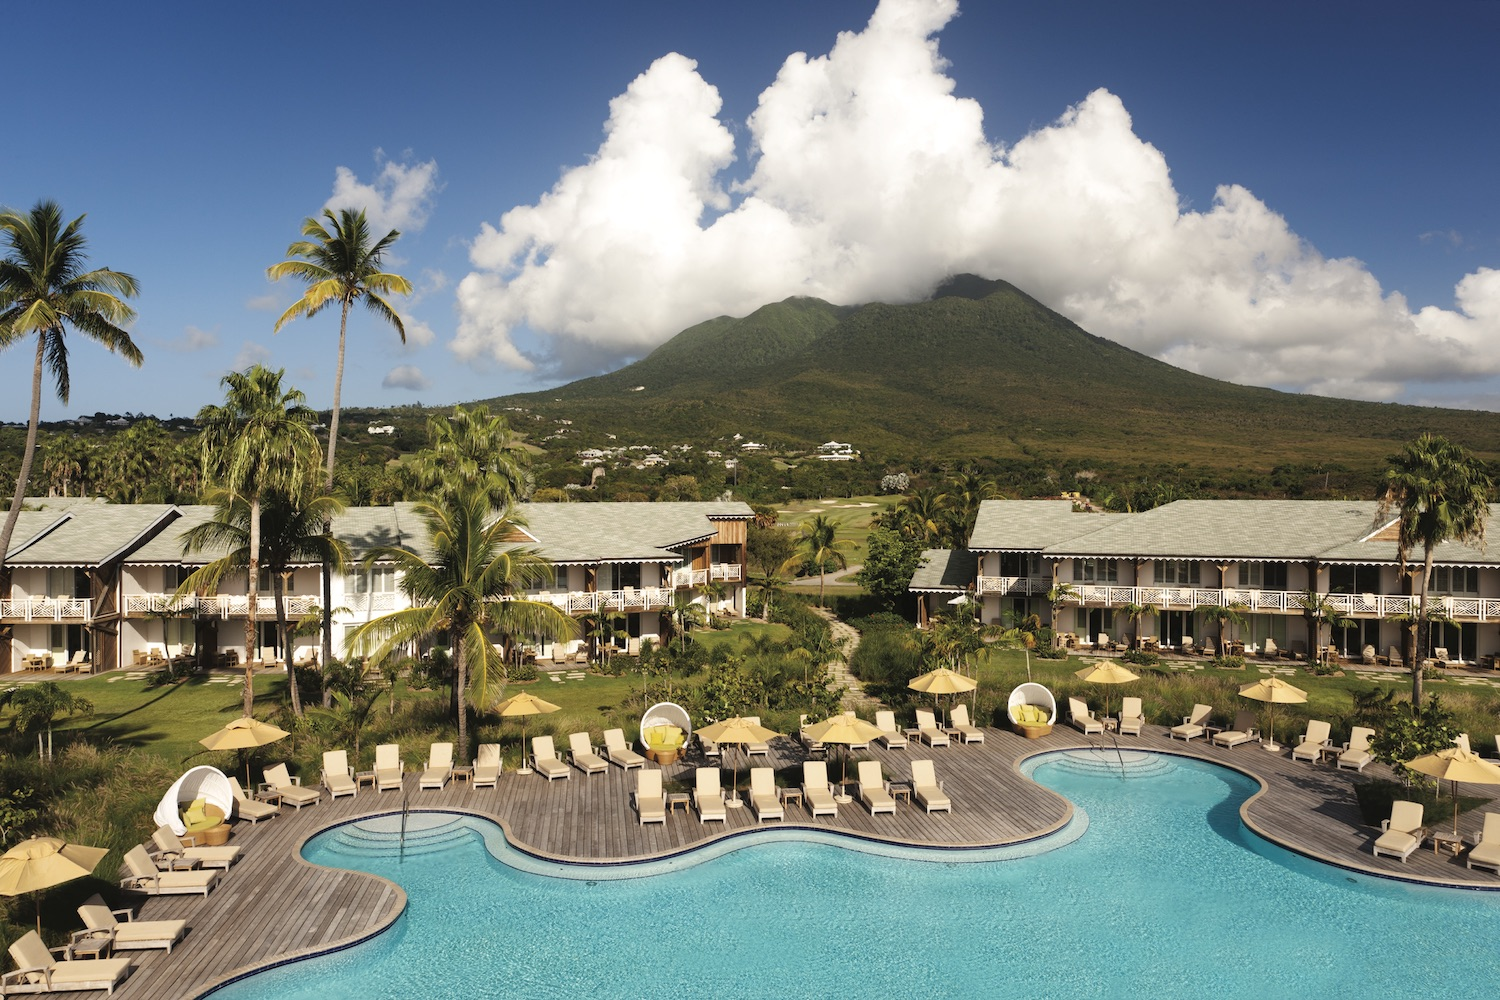 Four Seasons Resort Nevis - Stay Longer - 4th Night FreeNevis My Way - Daily Resort Credit